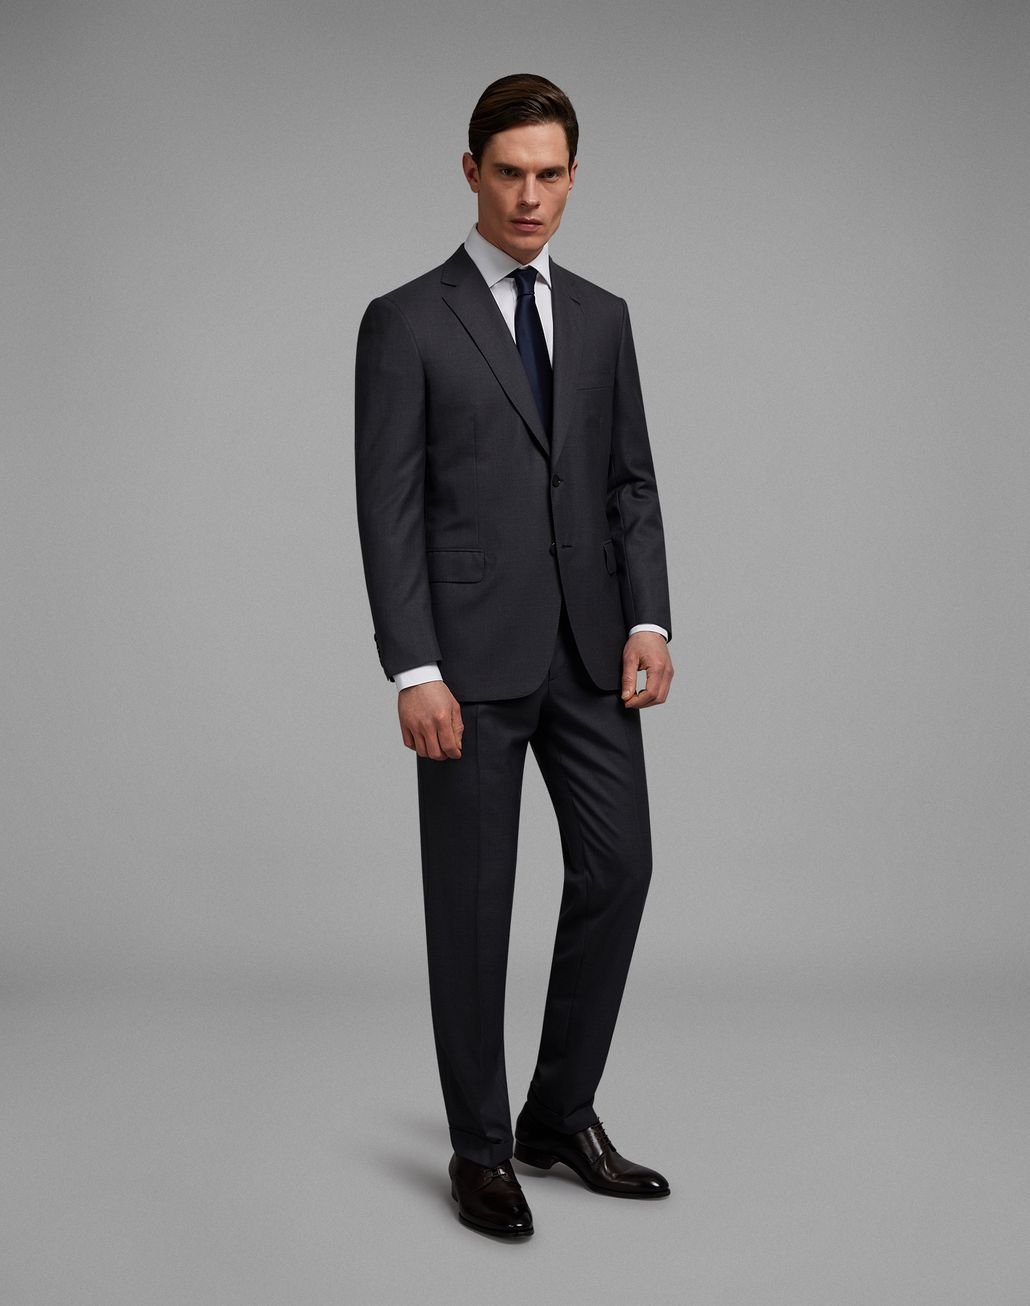 BRIONI Costume Brunico couleur charbon Suits & Jackets Homme r